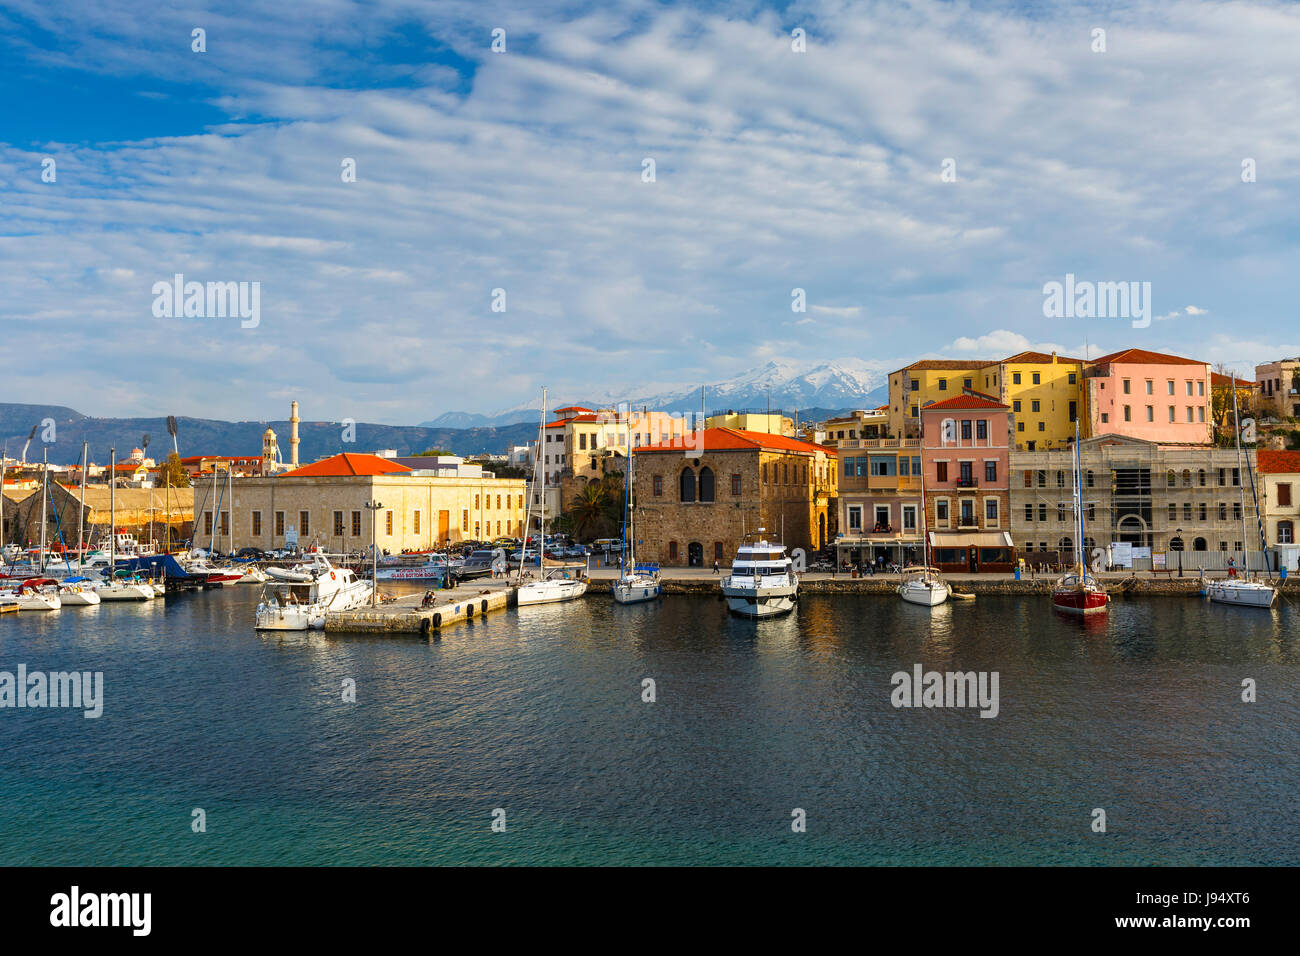 Old town of Chania in Crete, Greece. - Stock Image